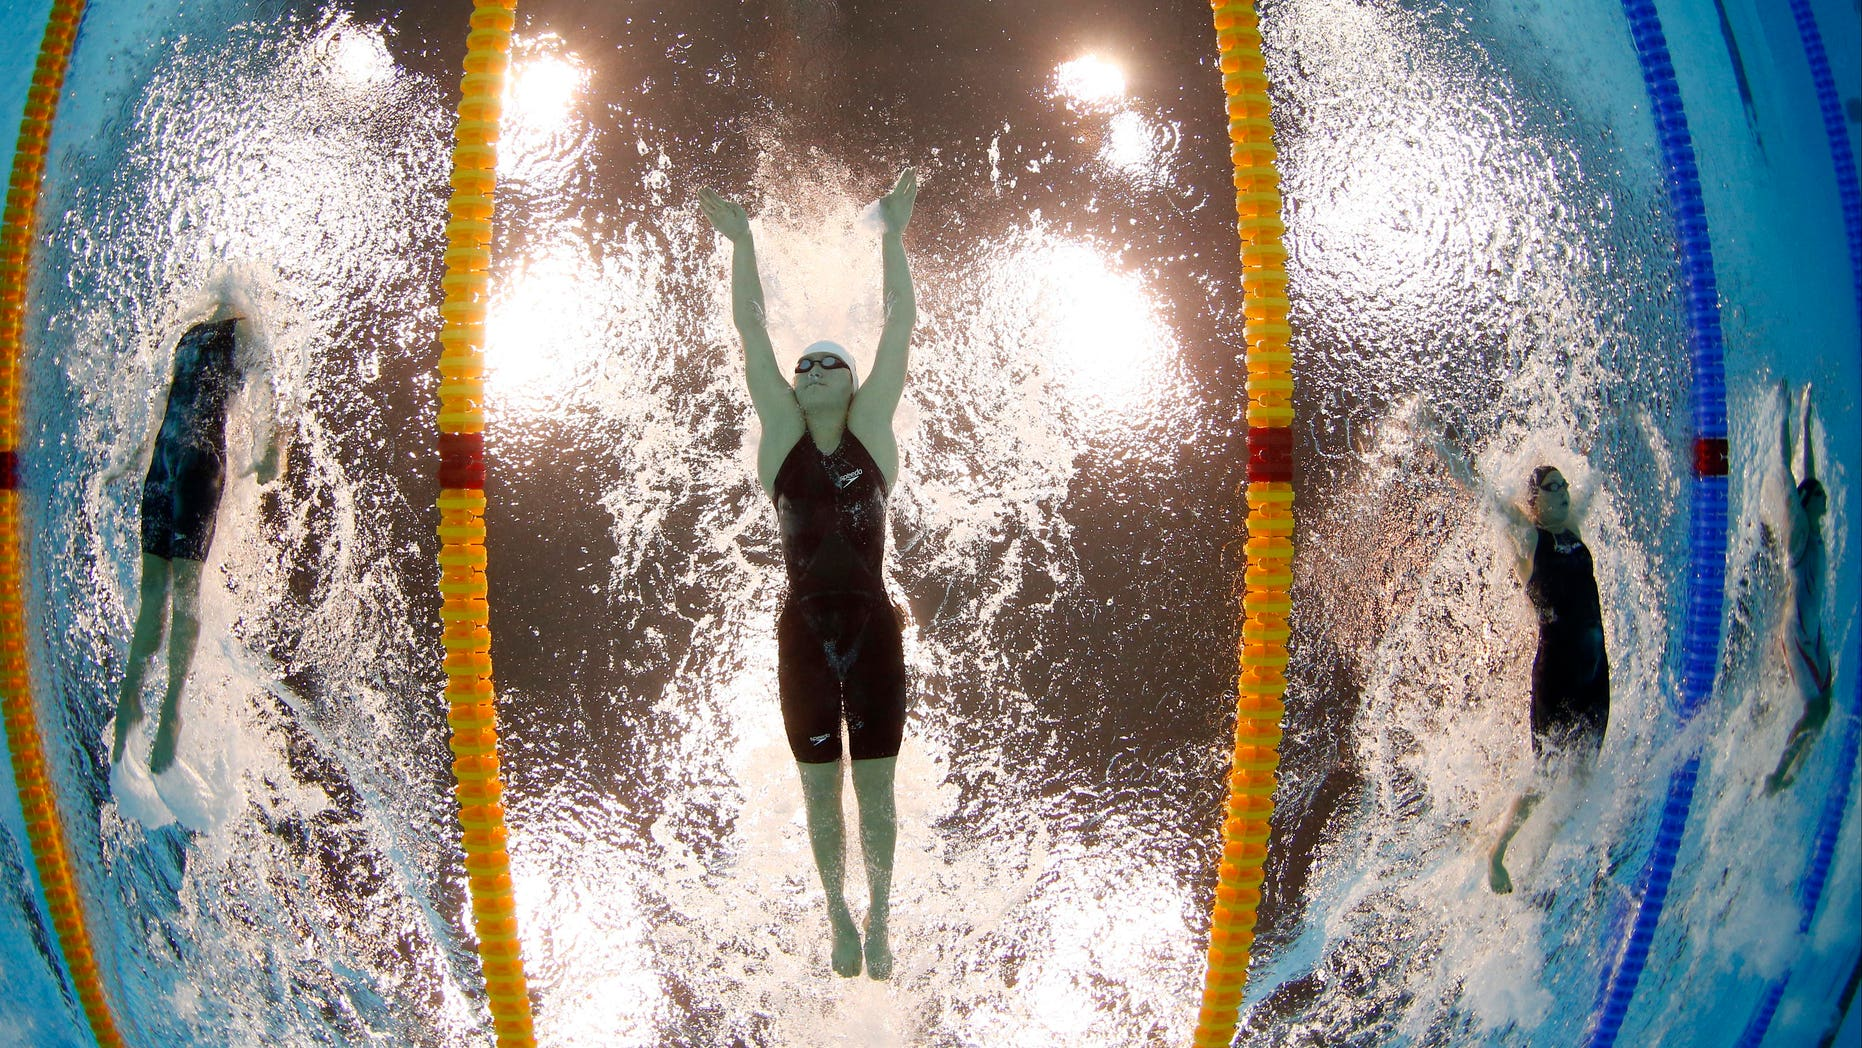 July 31, 2012: China's Ye Shiwen, center, competes in the  women's 200-meter individual medley swimming final at the Aquatics Centre in the Olympic Park during the 2012 Summer Olympics in London.